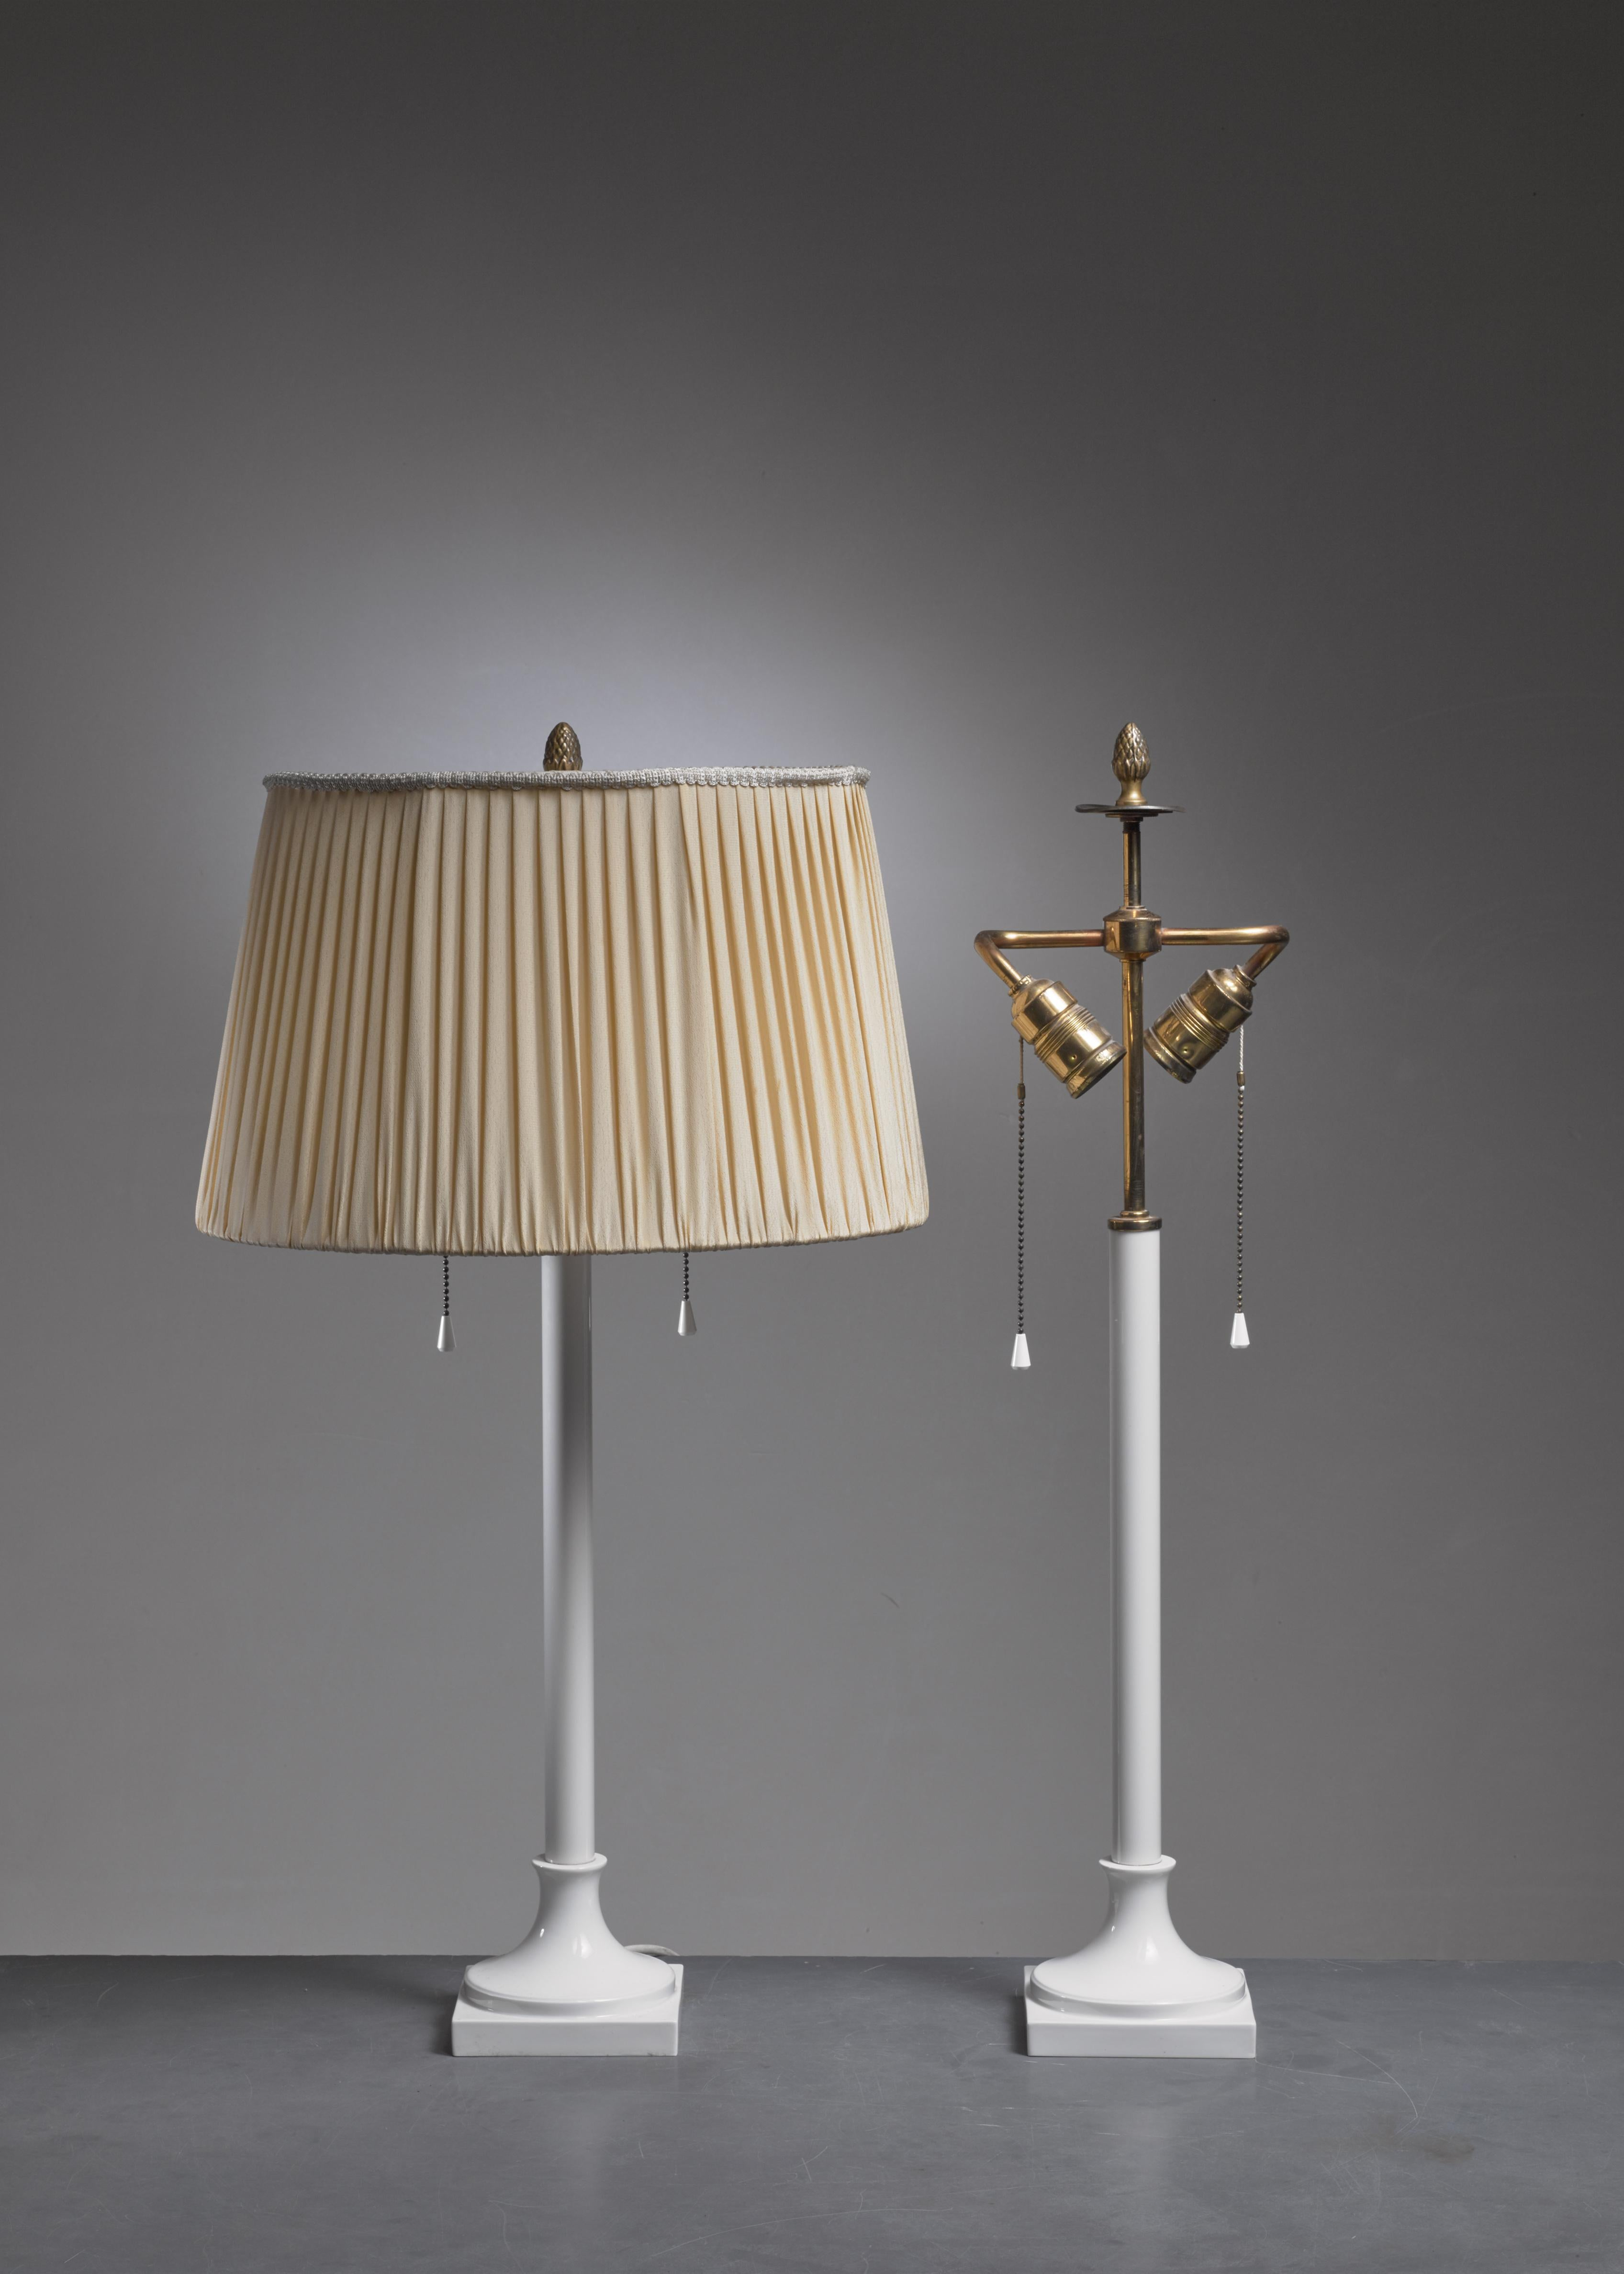 Pair Of White Porcelain Table Lamps By KPM Berlin, 1930s   Image 2 Of 4